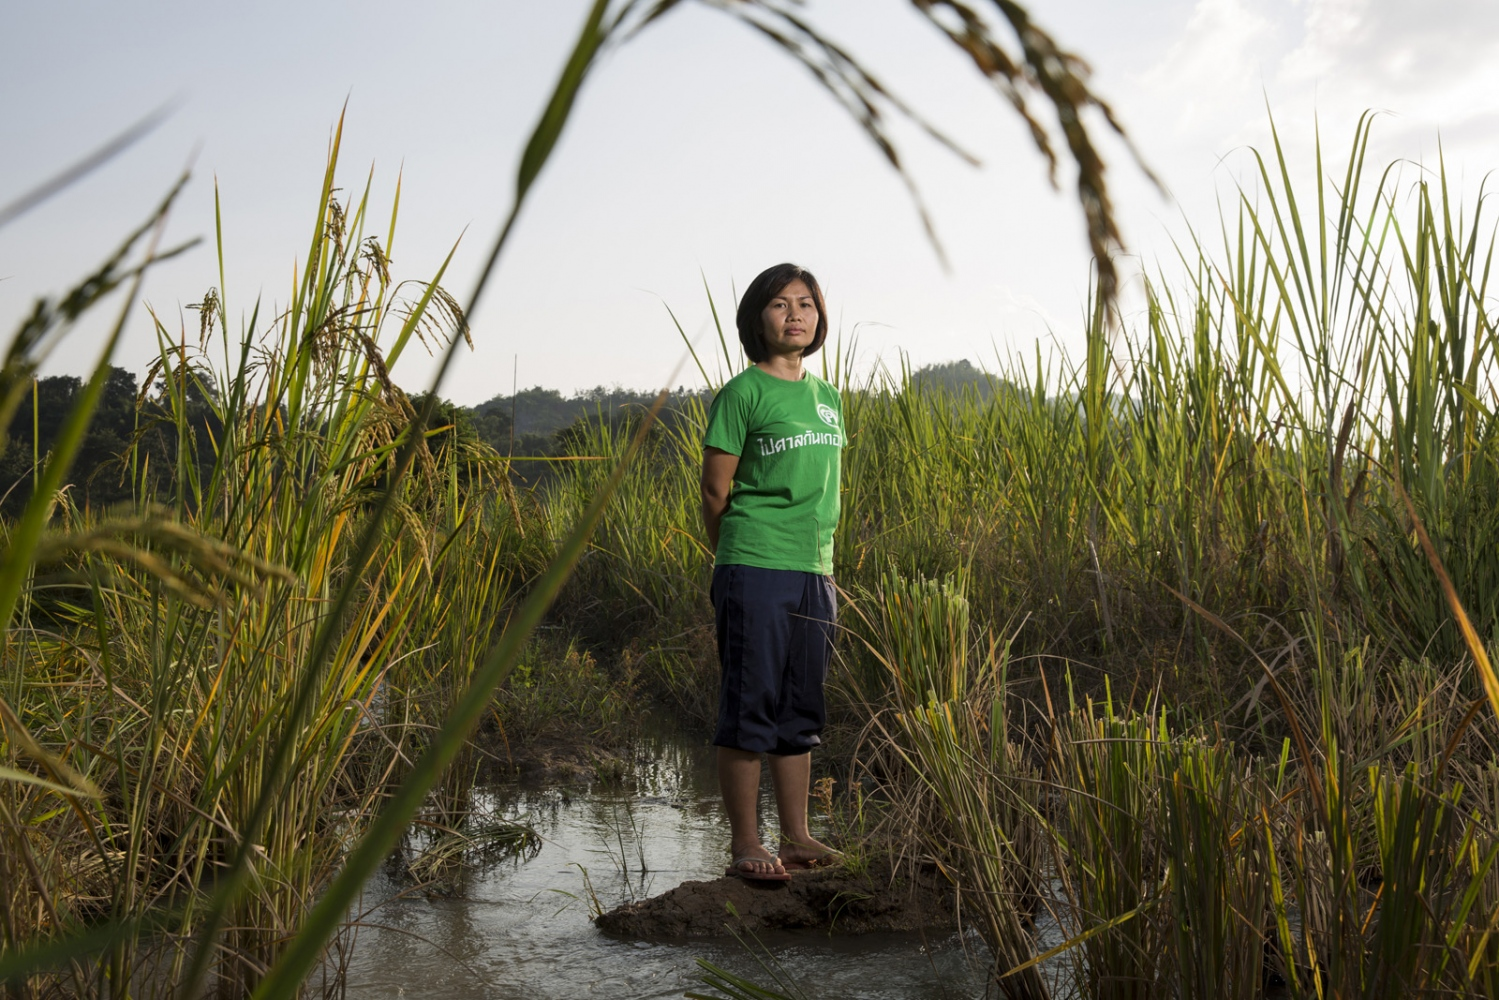 Phattraporn Kaengjumpa, a member of the Khon Rak Ban Kerd Environmental Group stands in a rice paddy in the village of Na Nong Bong in Loei Province. The mountains behind her are the location of a gold mine that the villagers allege continues to contaminate their water supply and affect their crops. Loei, Thailand